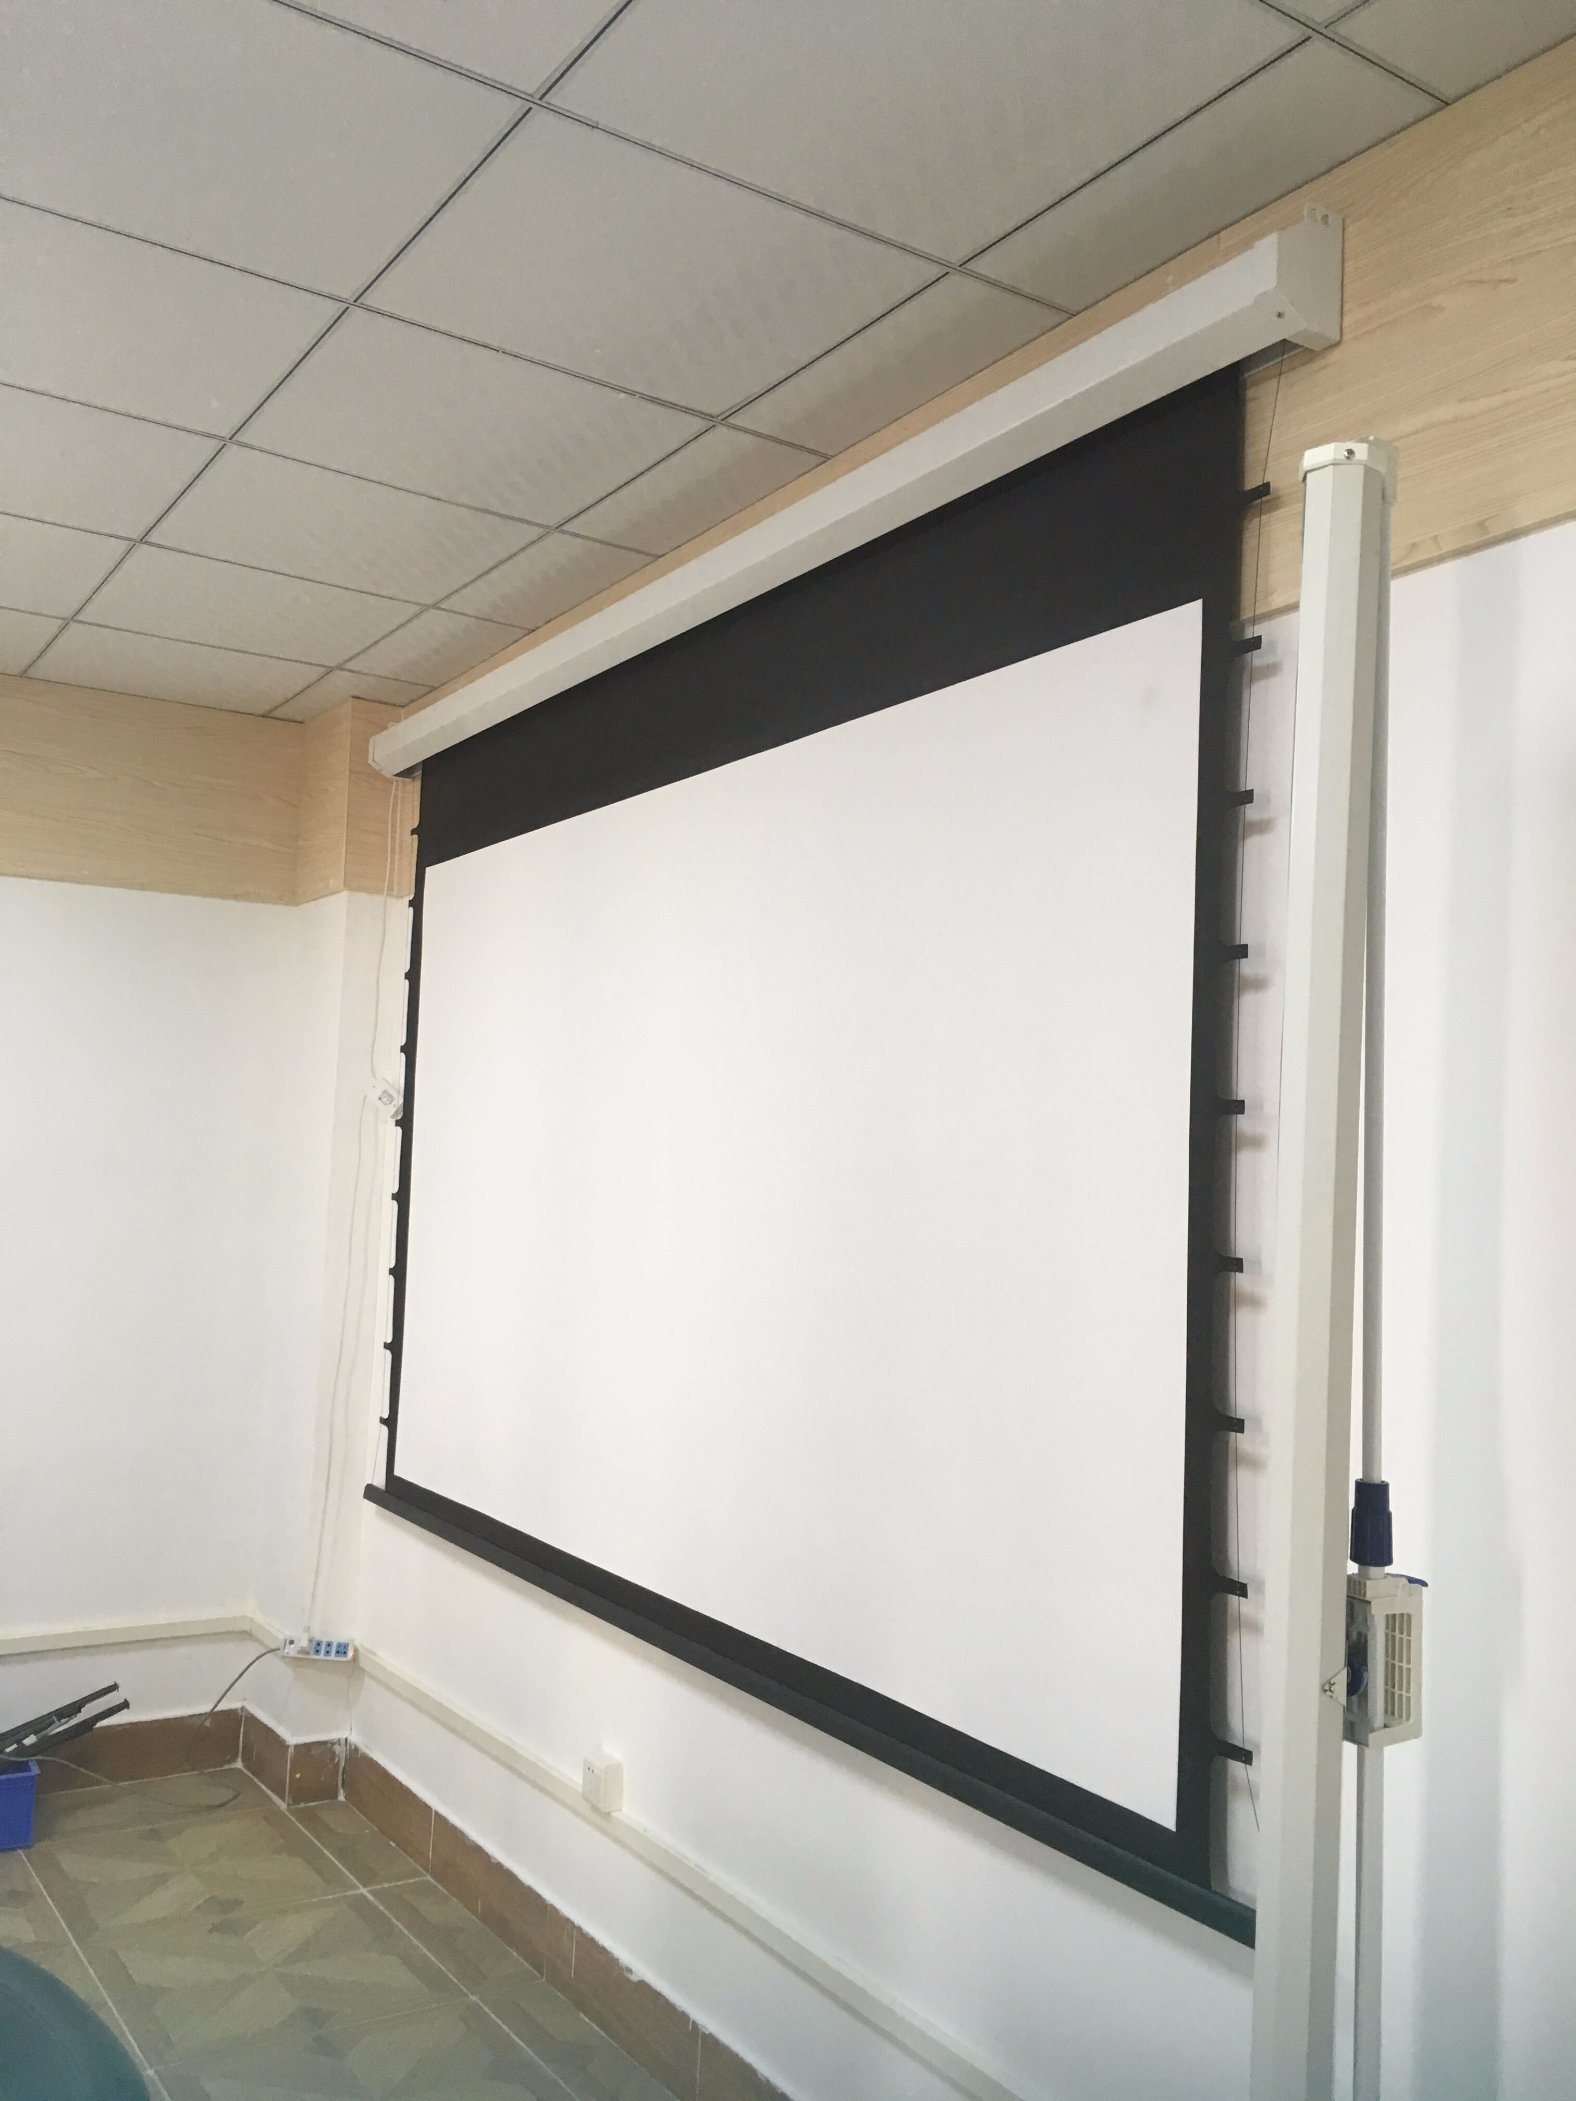 China Home Cinema 3D Silver Projector Screen Tab Tensioned ...